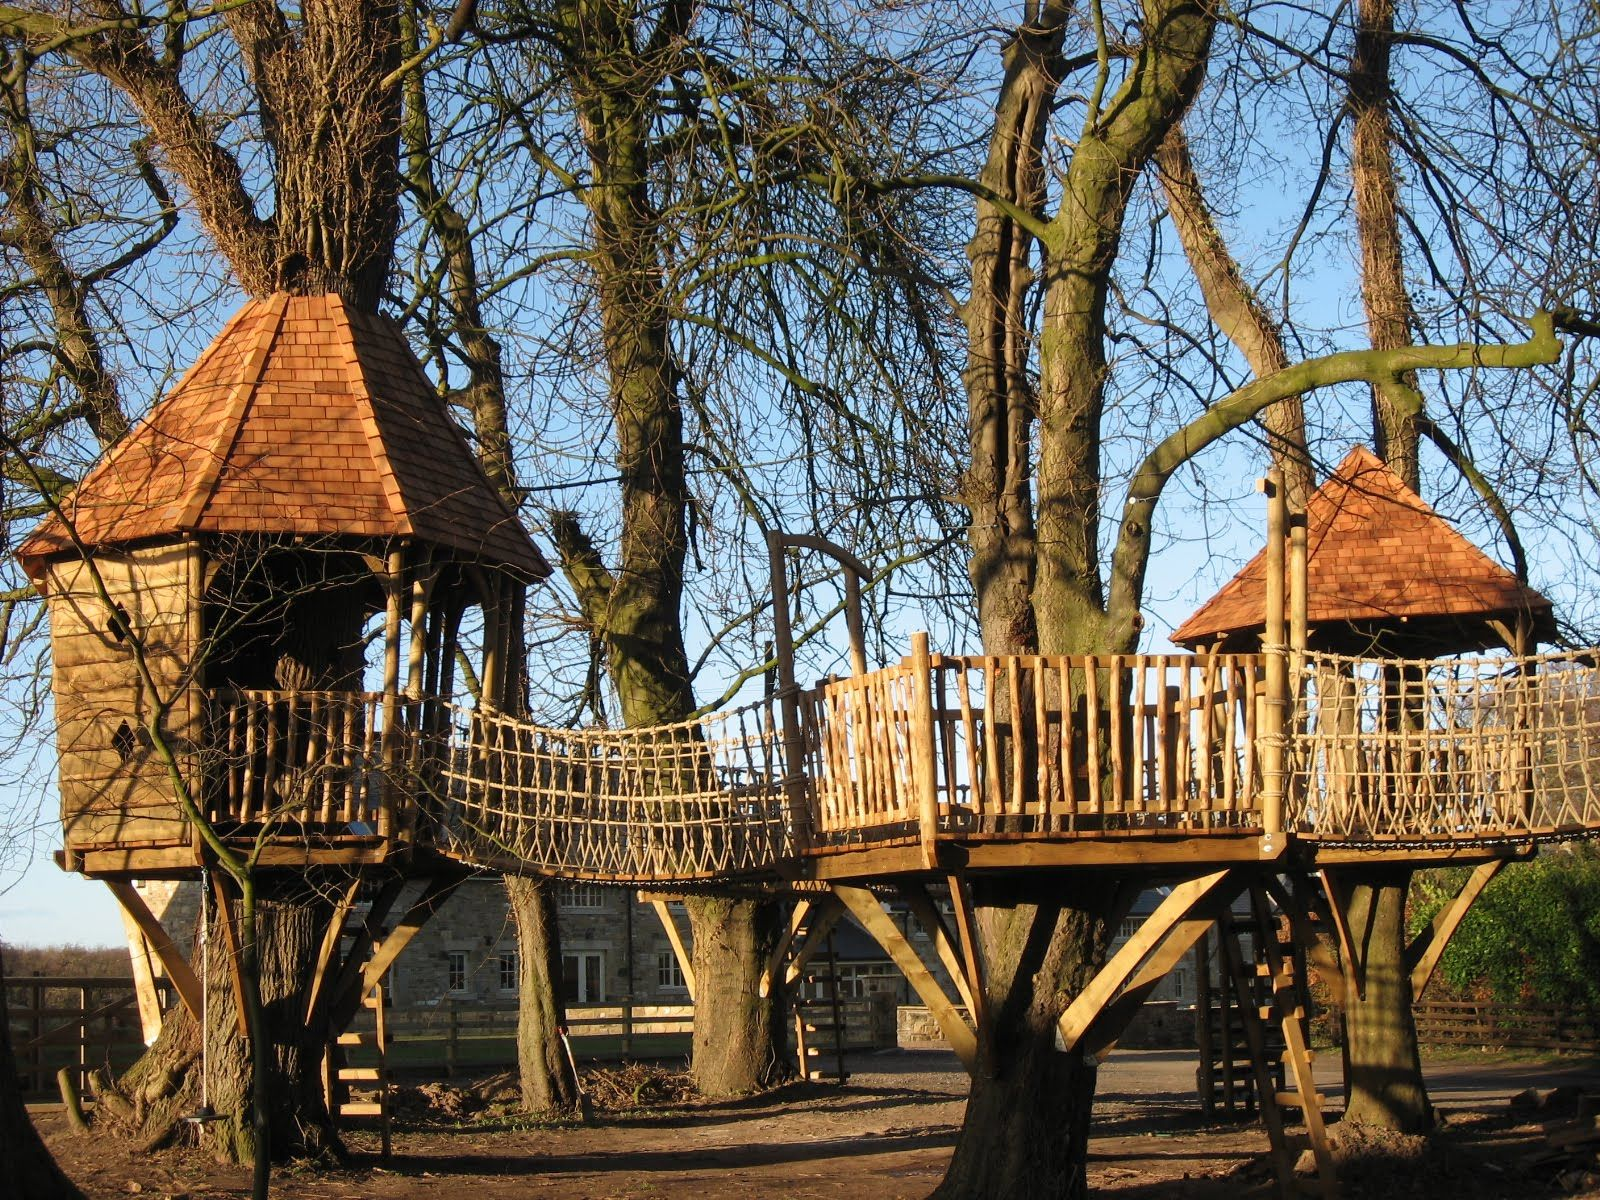 Beautiful Sensational Tree House With Cute Orange Roof And Fancy Wood And Rope Bridge Tree  Platform Design: Robust And Beautiful Tree Platform Design Artworks